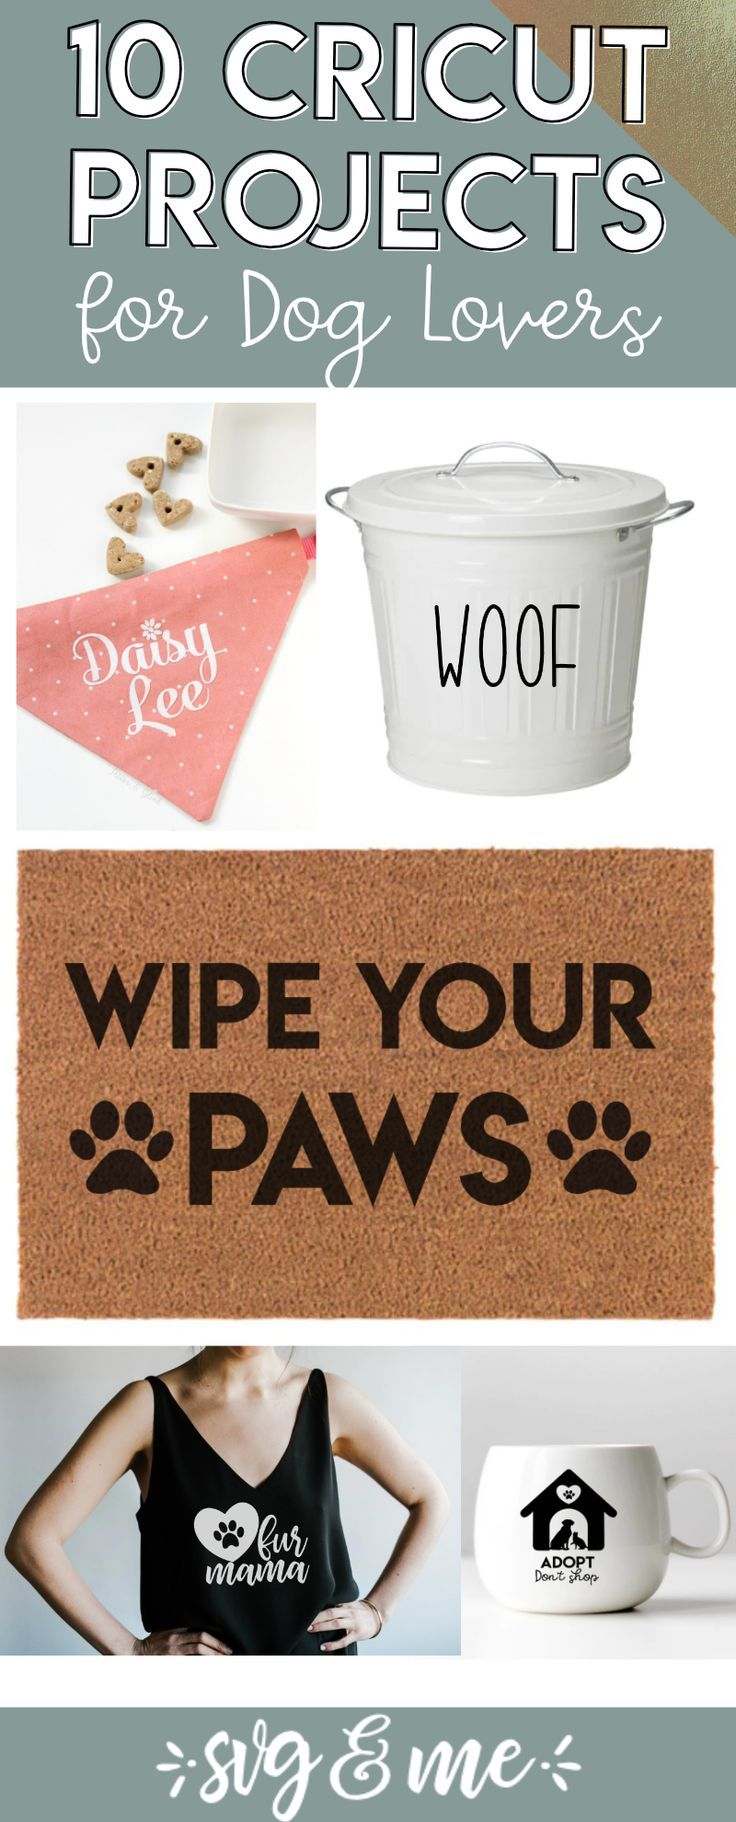 10 adorable cricut projects every dog lover will want to